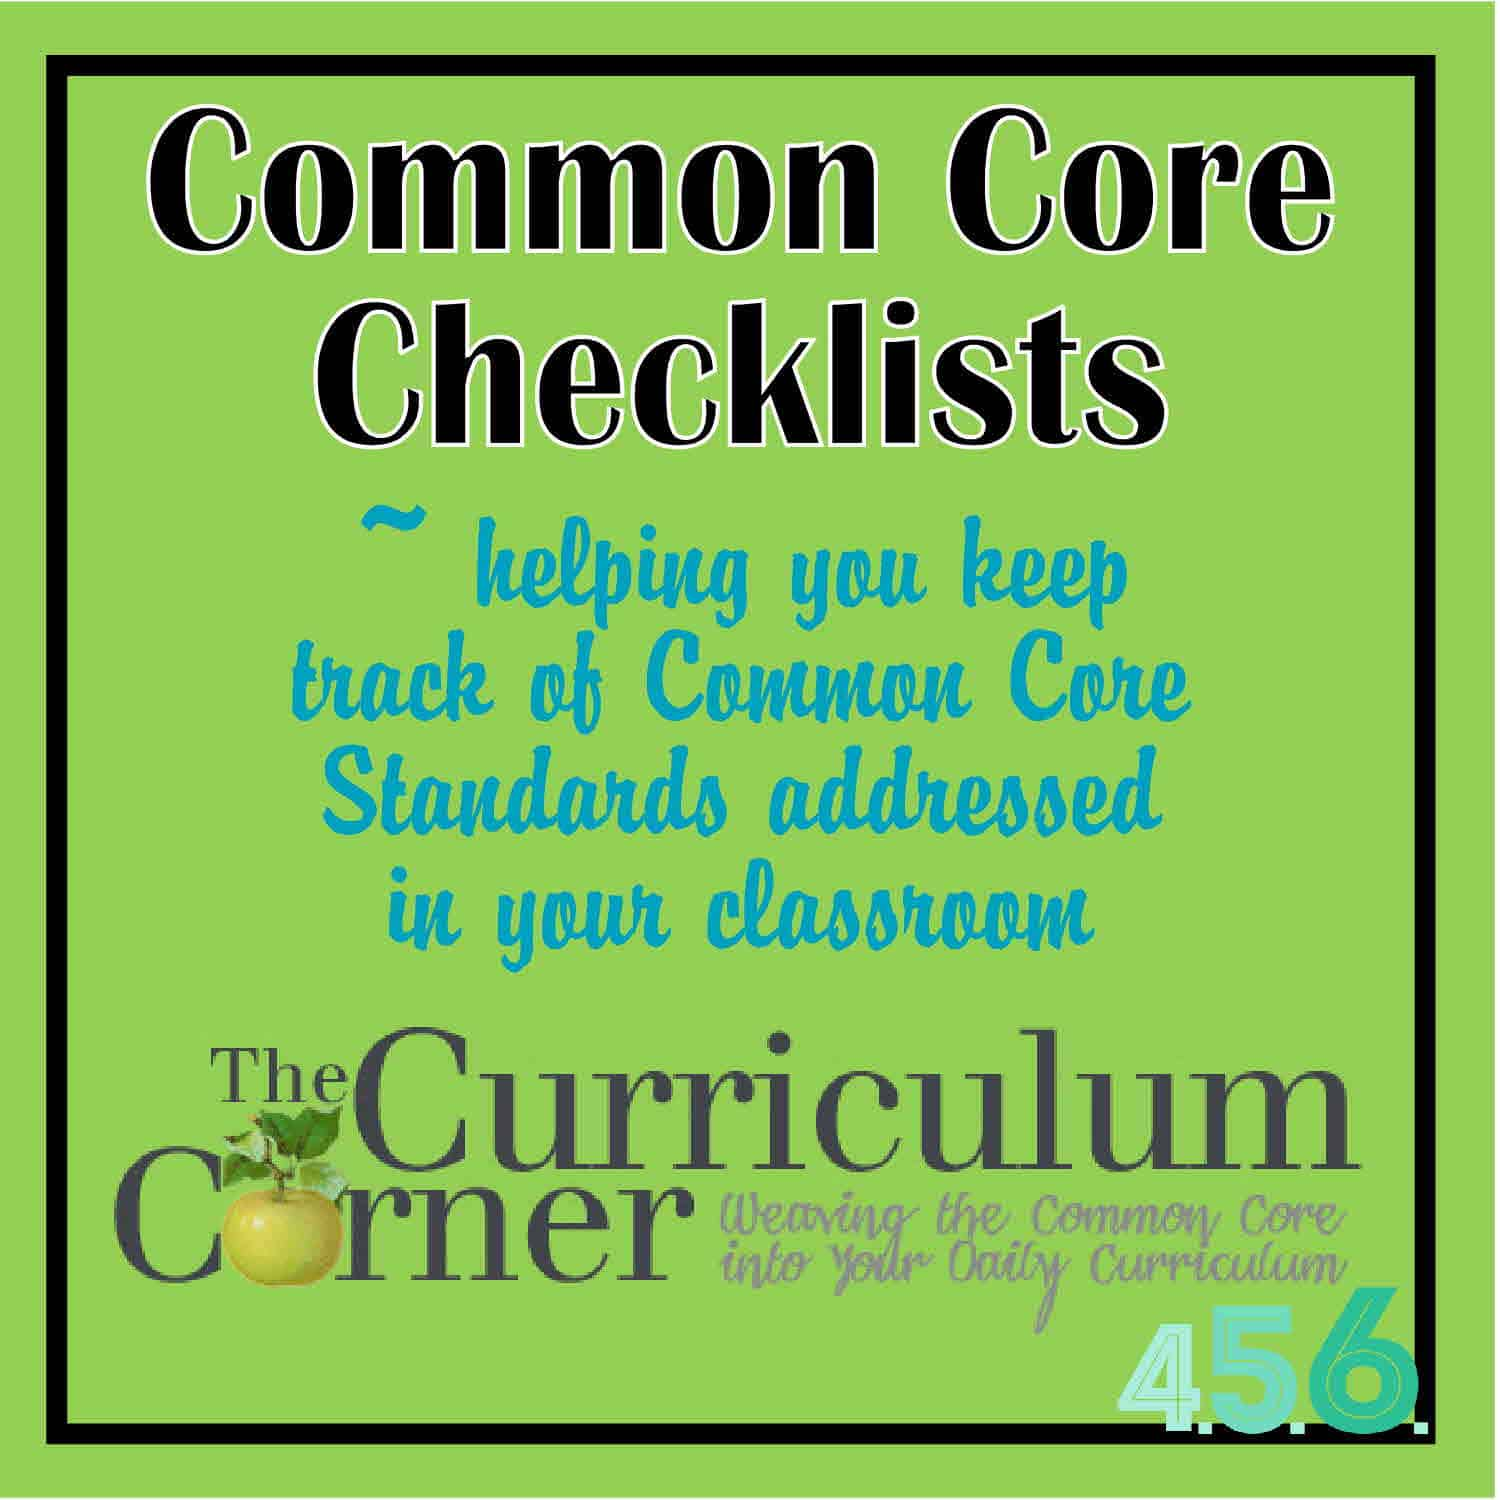 4th 5th and 6th Grade Common Core Checklists by The Curriculum Corner